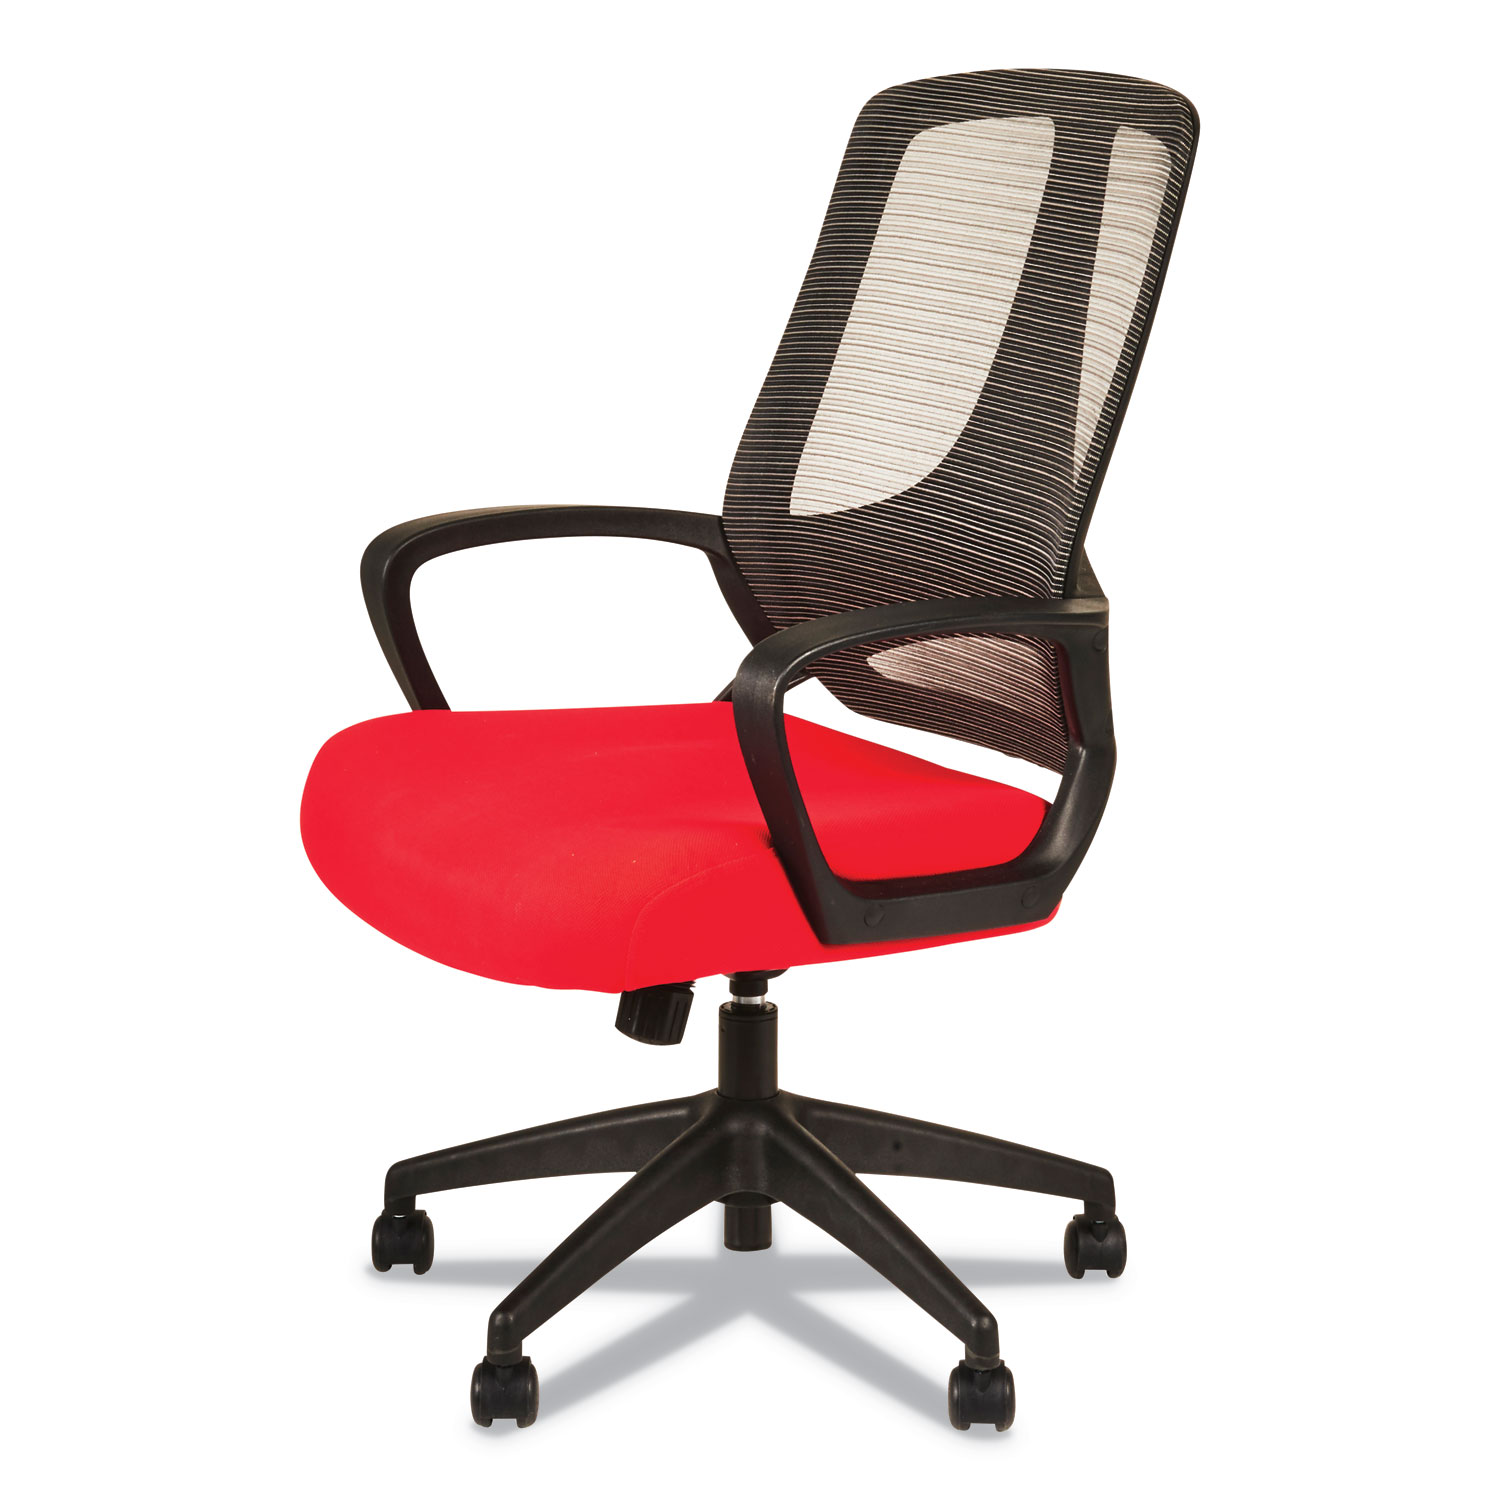 Alera Office Chairs Alera Mb Series Mesh Mid Back Office Chair Red Black Goddess